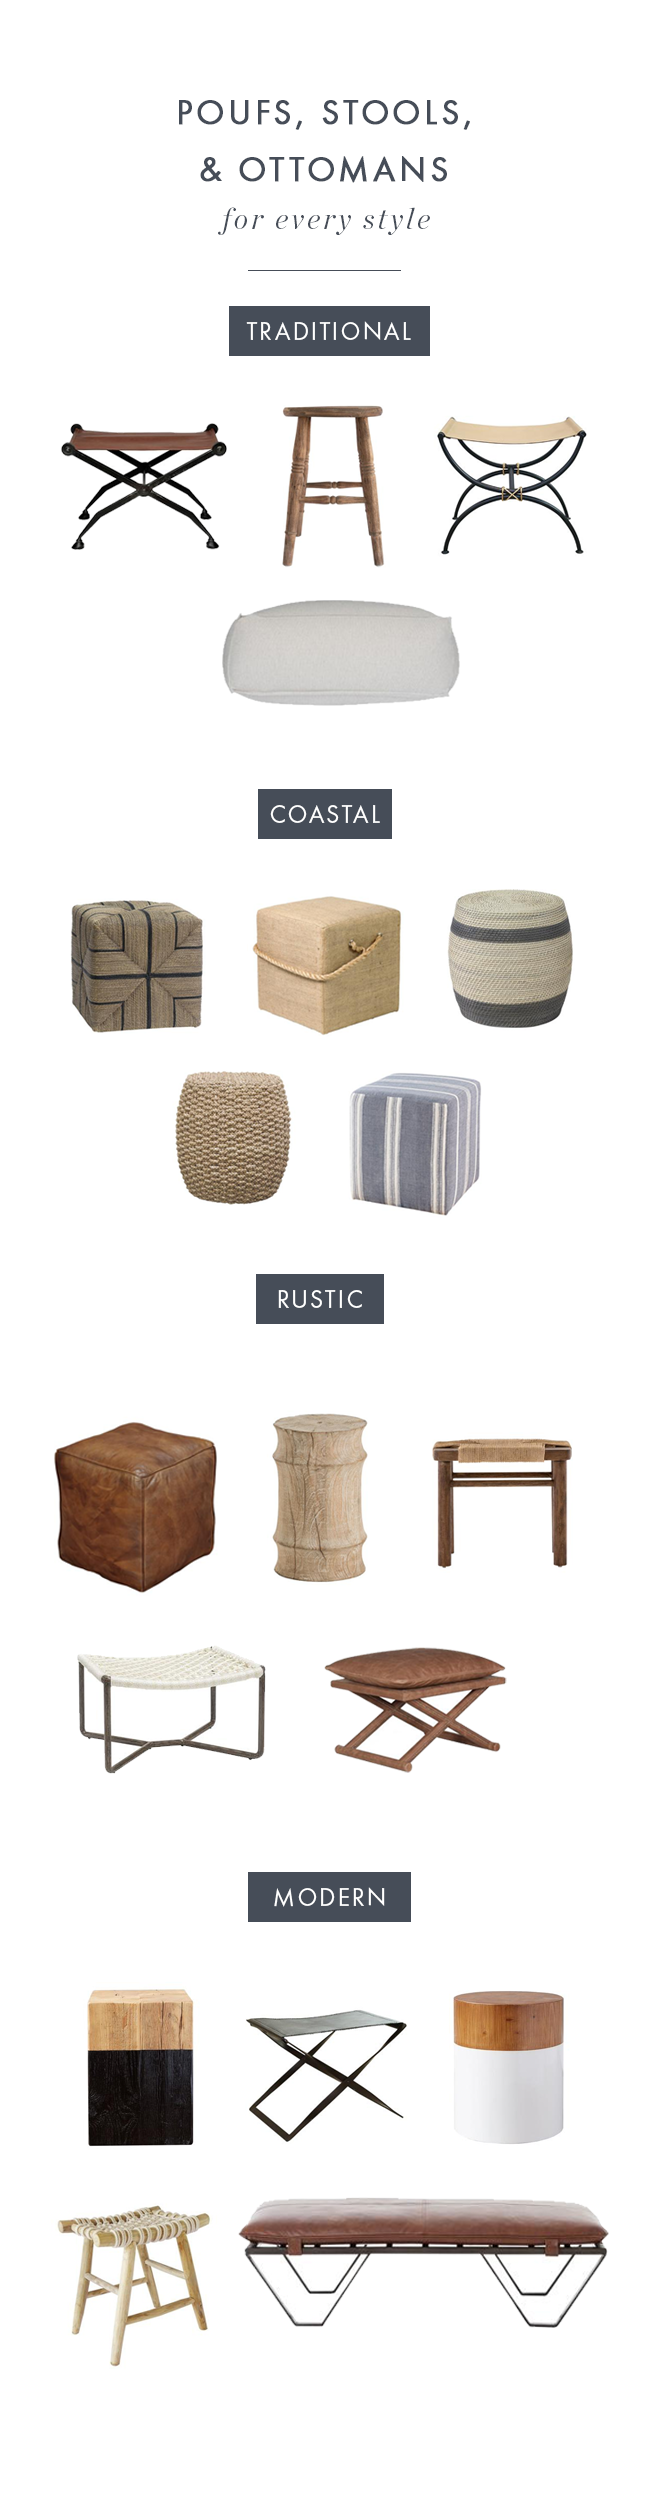 Stools, Poufs, and Ottomans for Every Style